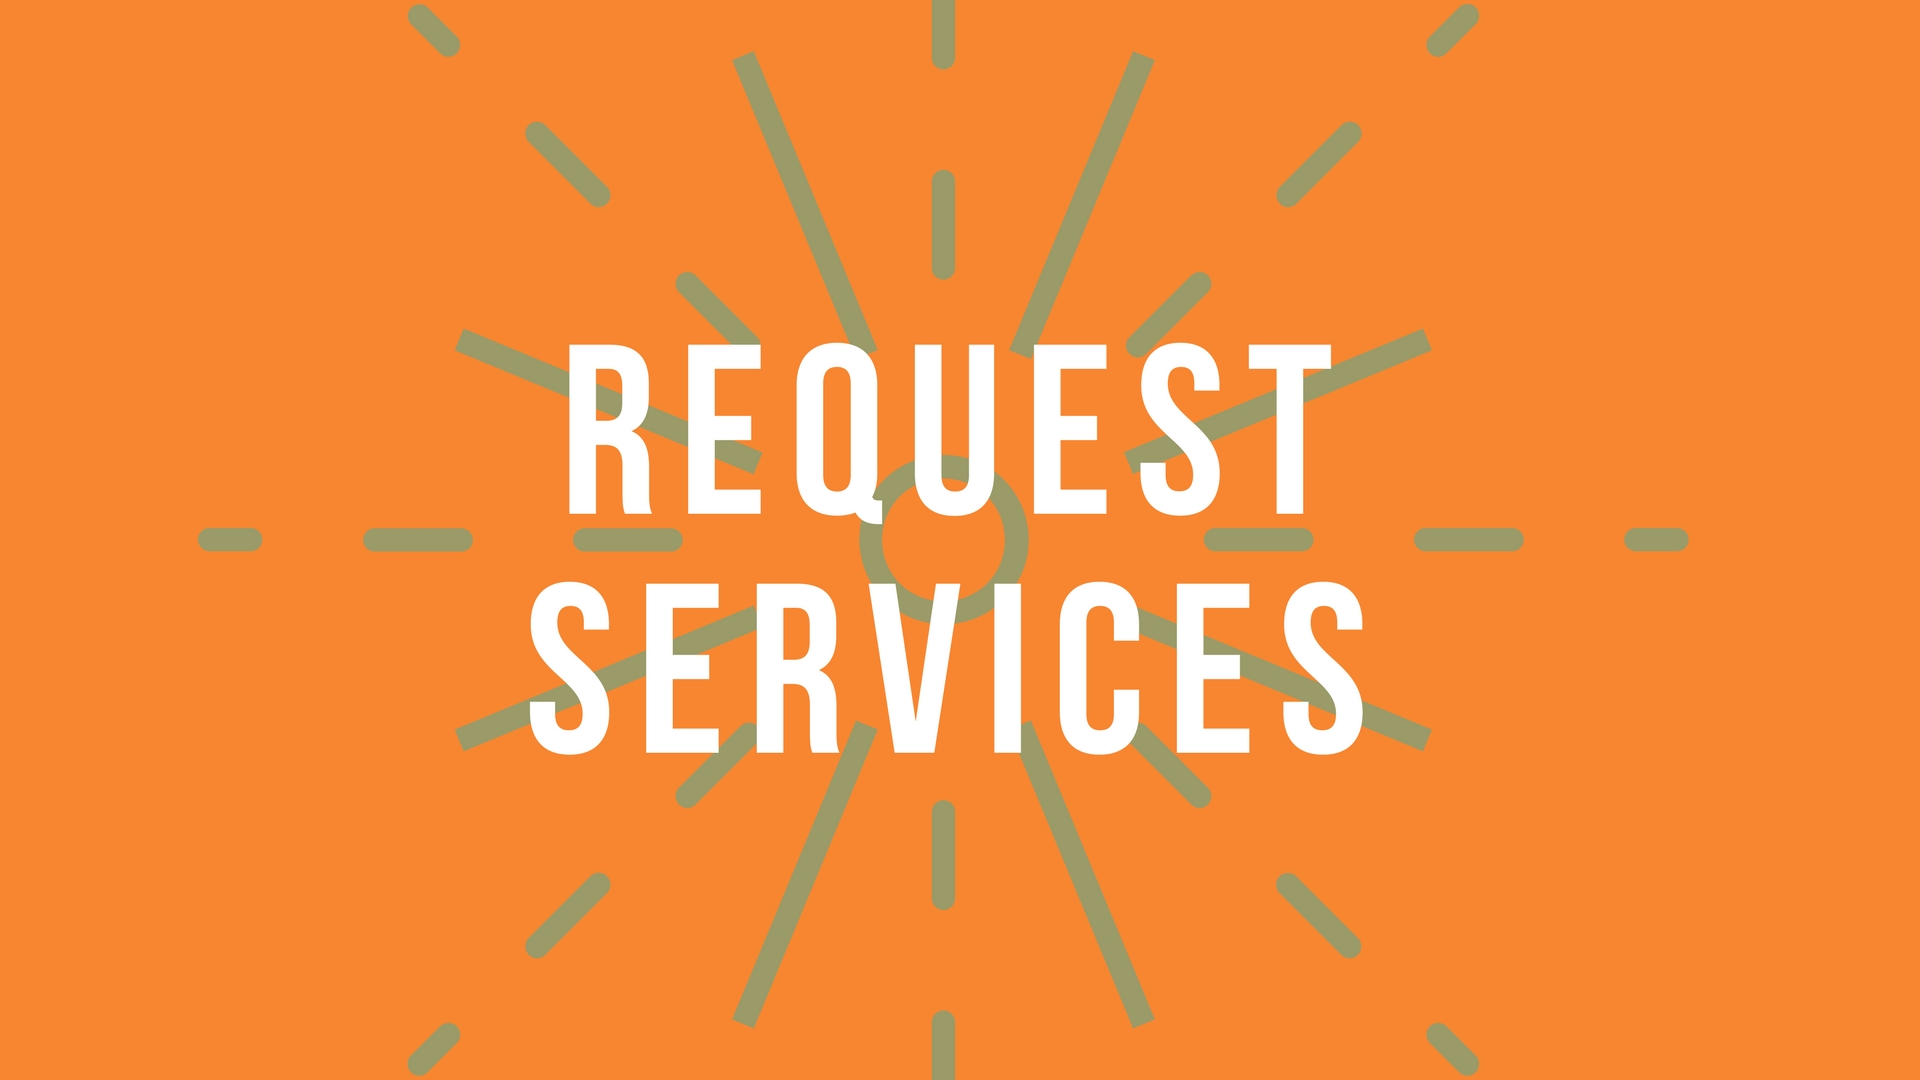 request services.jpg